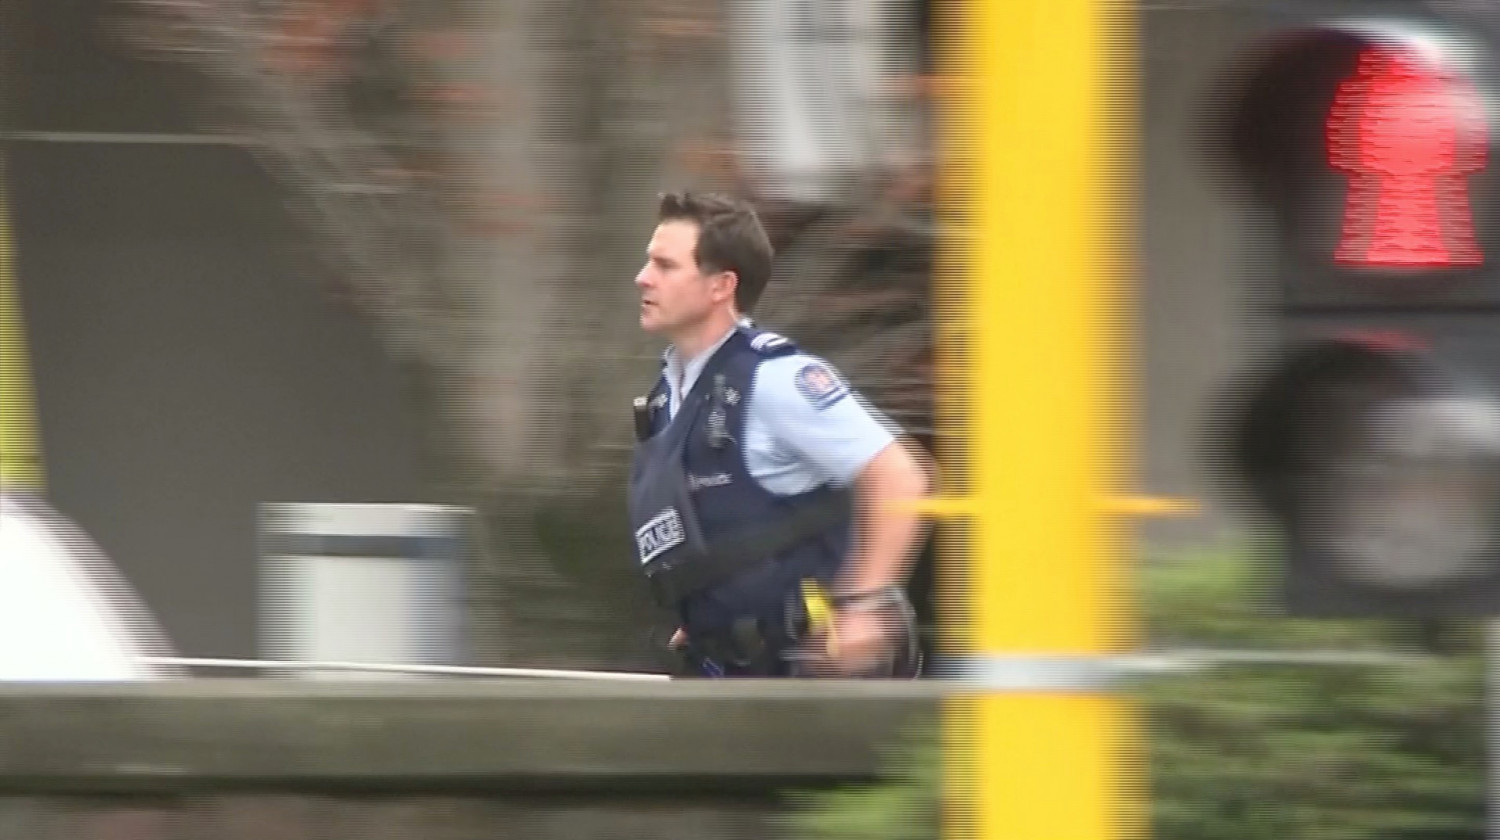 Christchurch Shooting Manifesto Claims Nz Mosque Attacks: Armed Bystander Chased And Fired At Christchurch Mosque